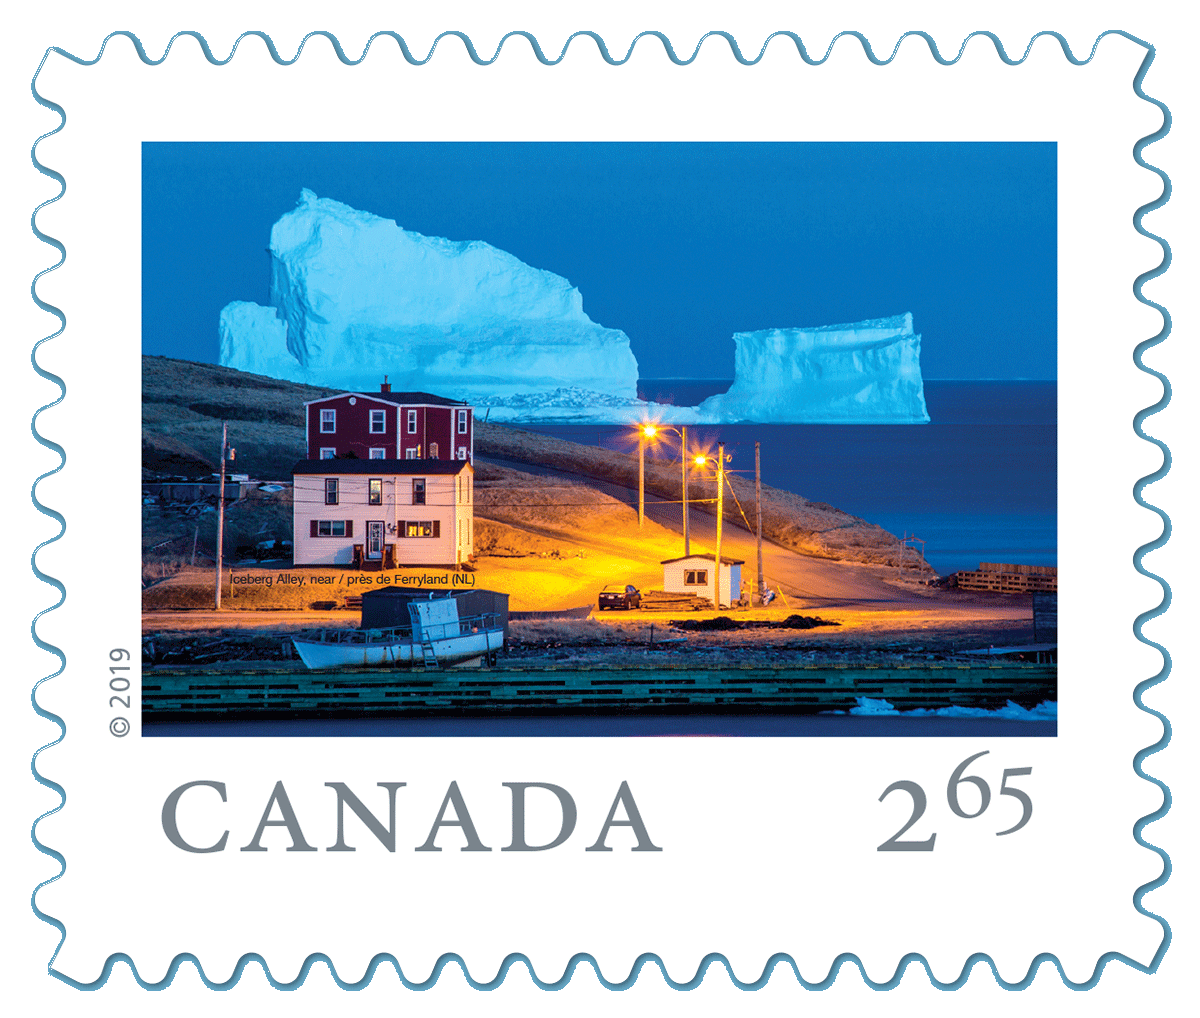 Canadian Stamp by Michael Winsor